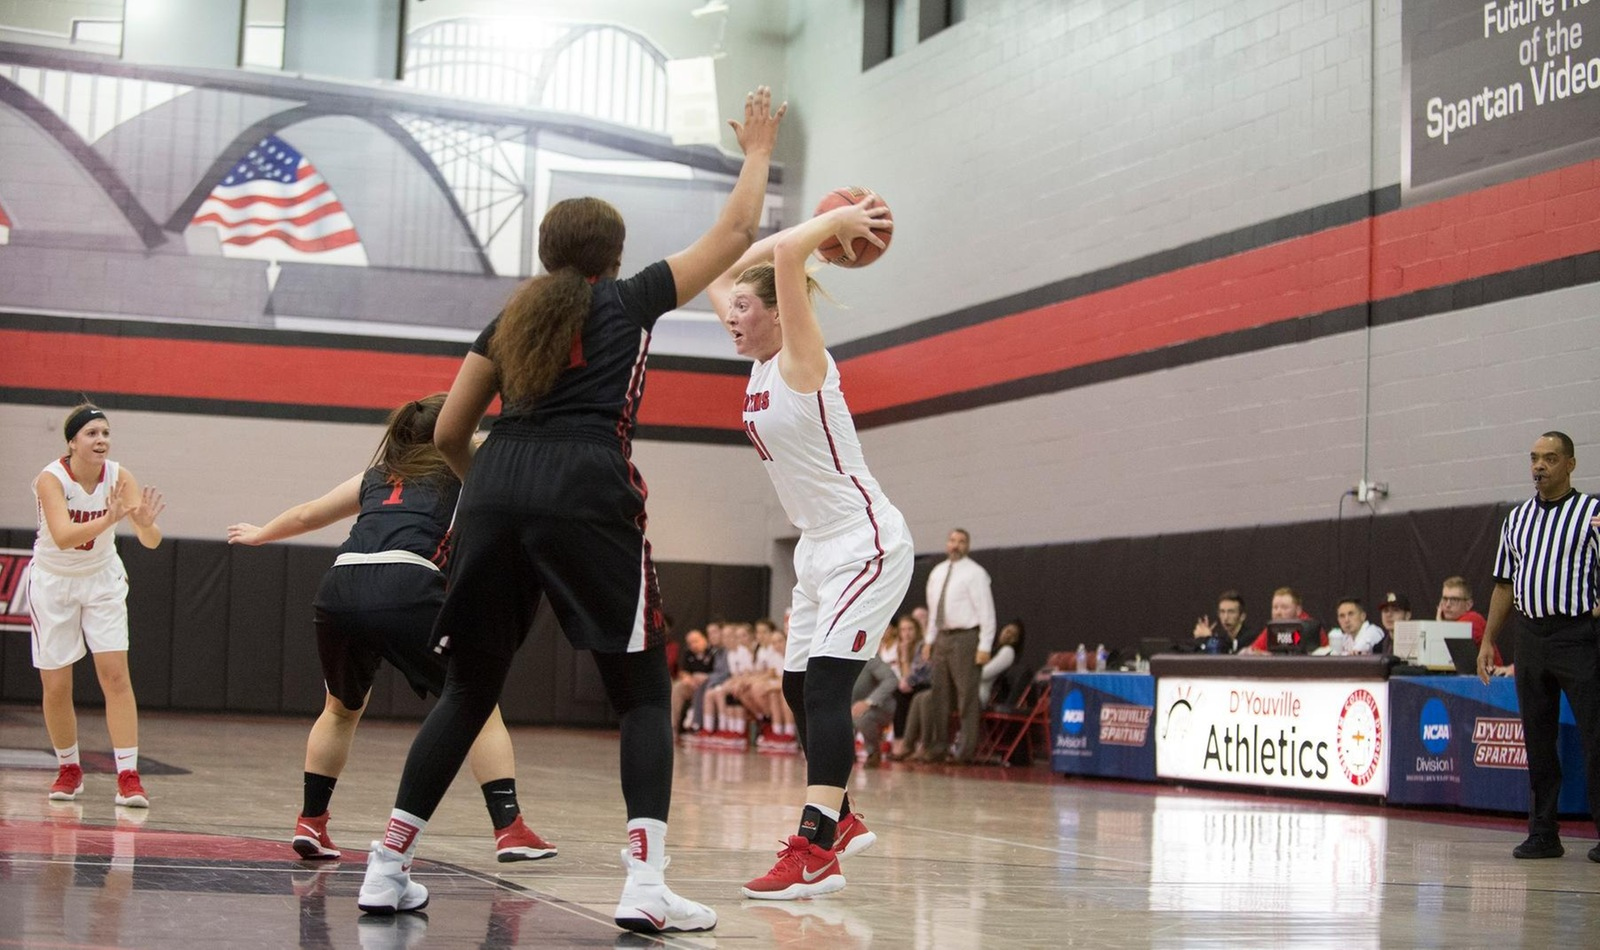 D'Youville Sweeps Season Series over Behrend with Win